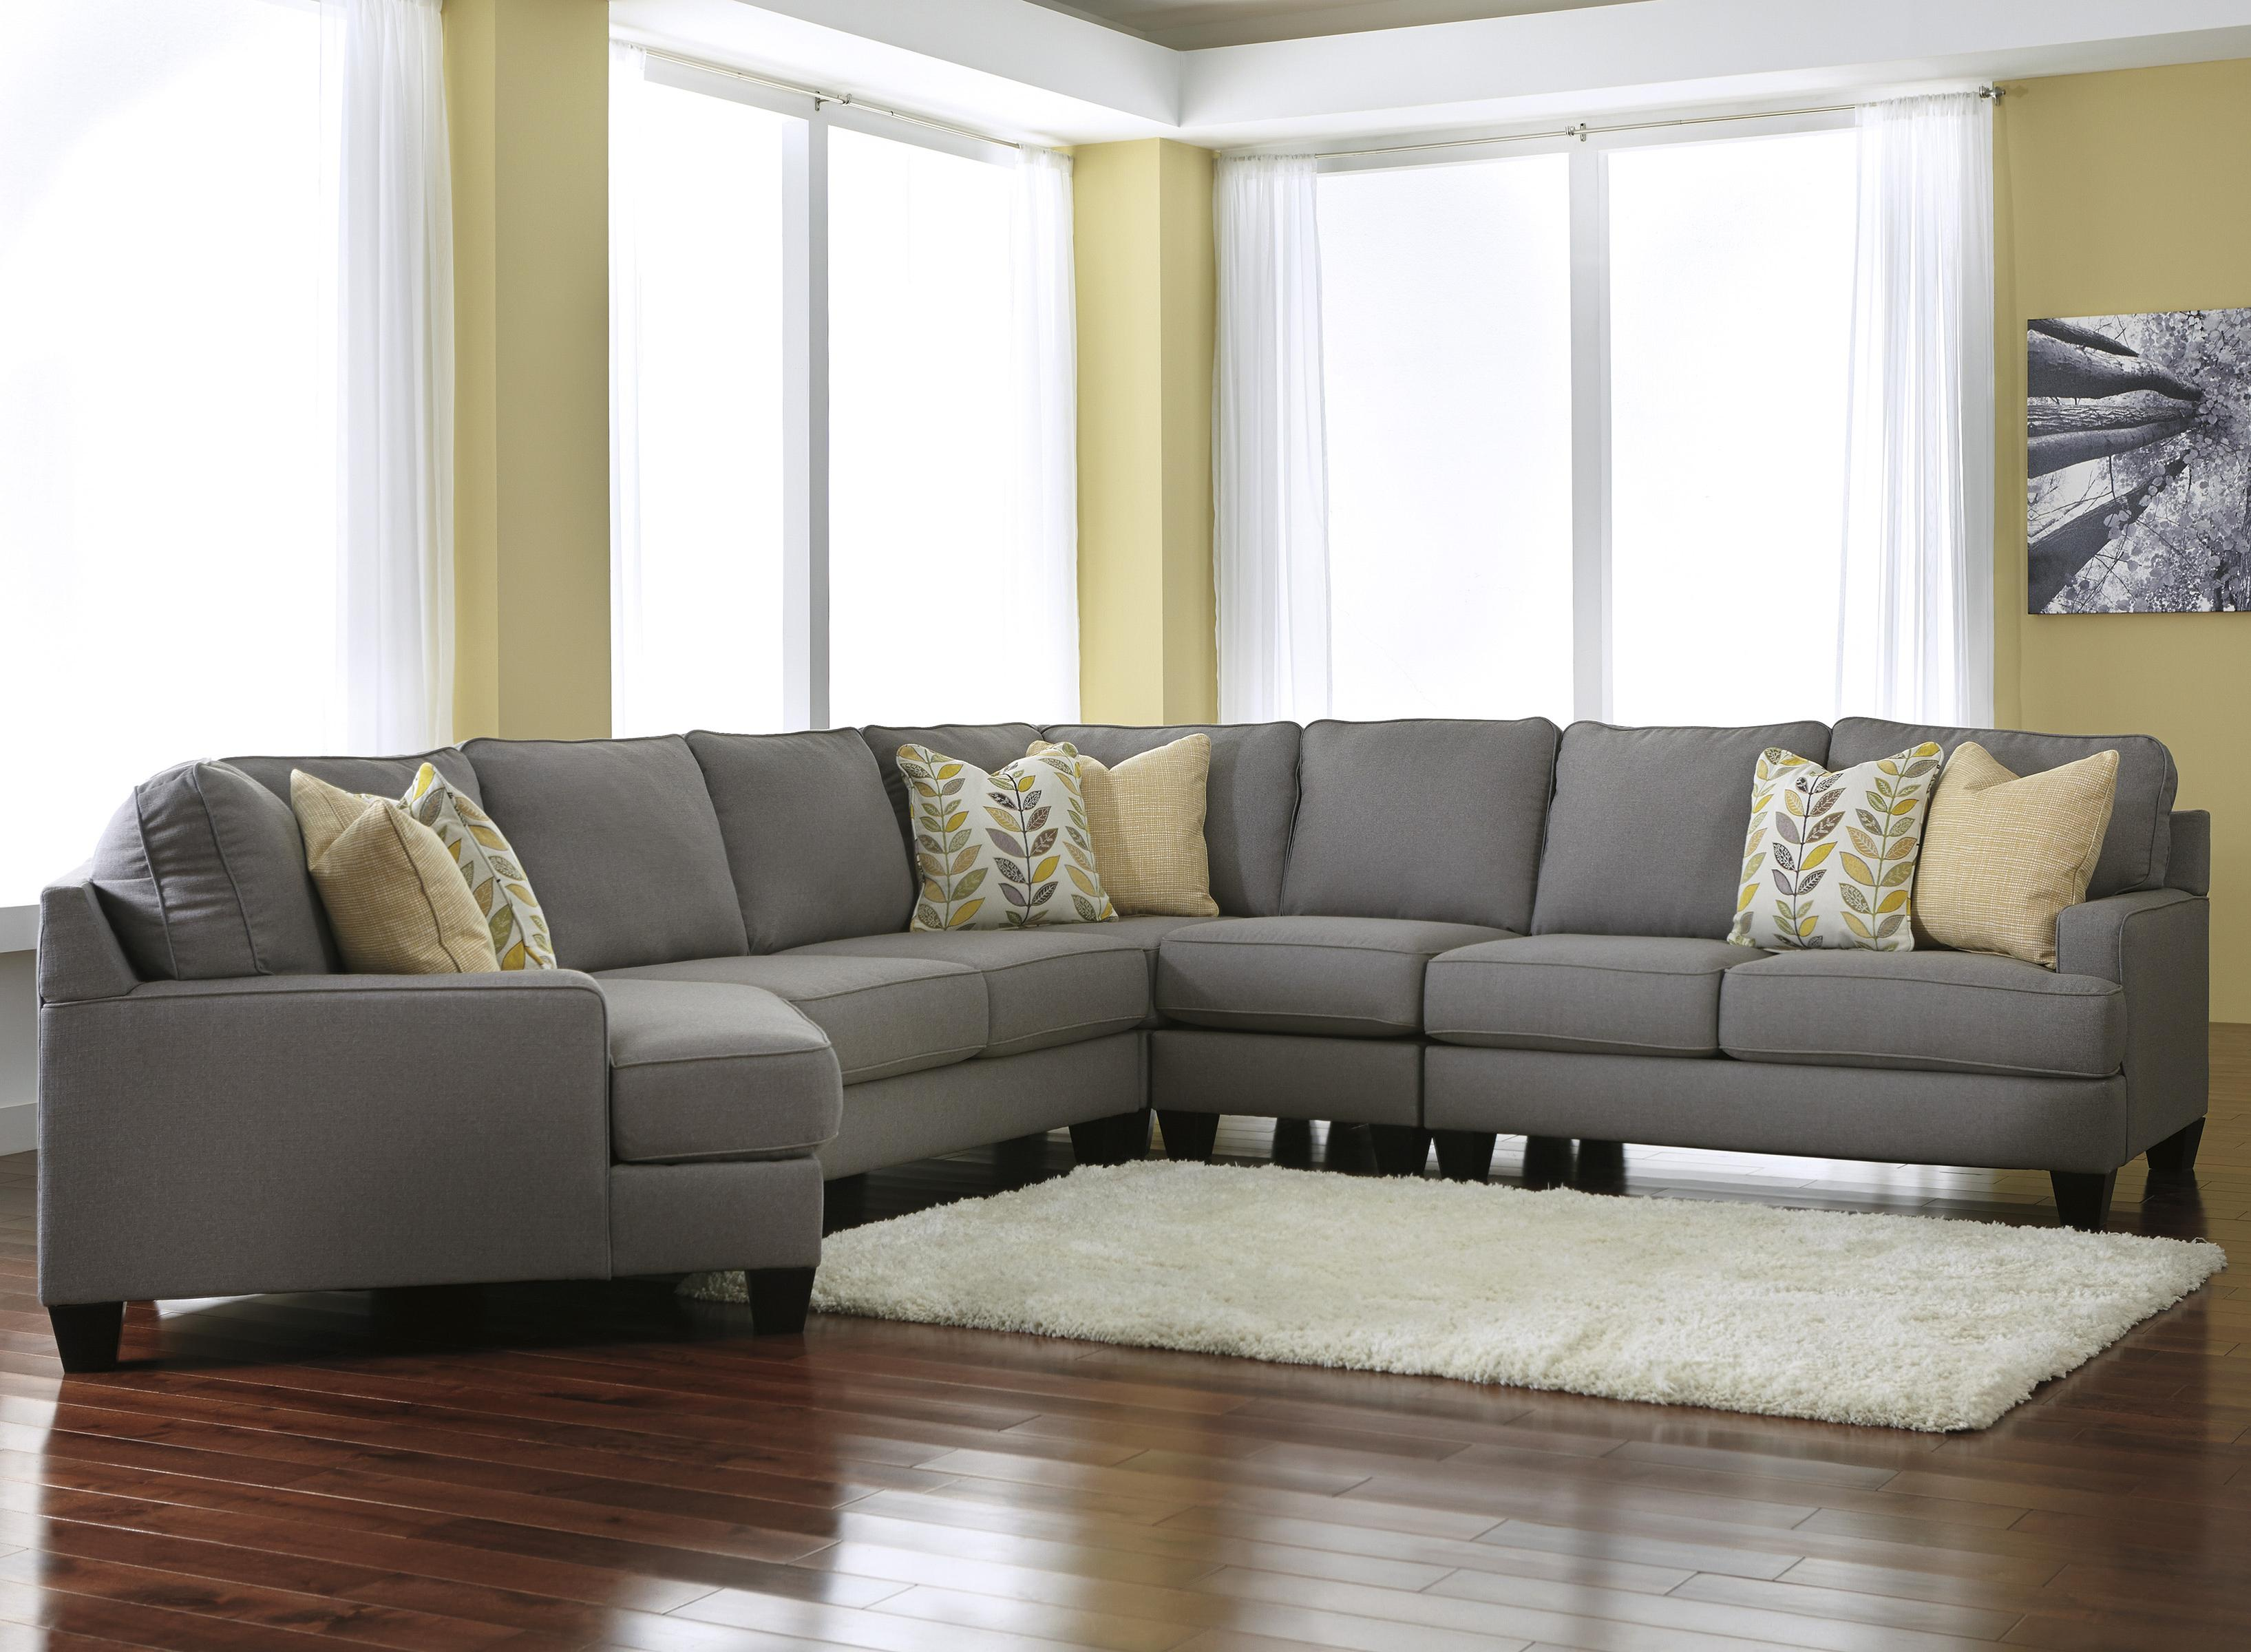 5-Piece Sectional Sofa with Left Cuddler